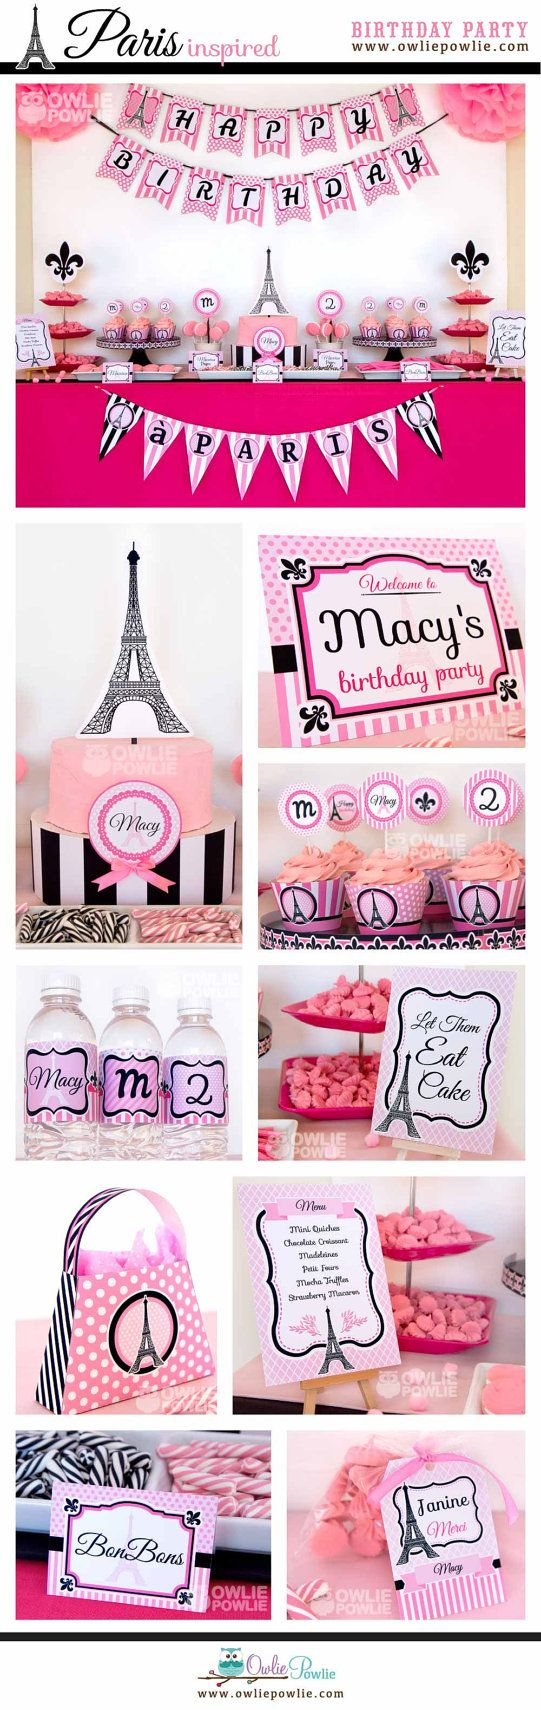 Paris BIRTHDAY Party Printable Package & Invitation by OwliePowlie, $29.00